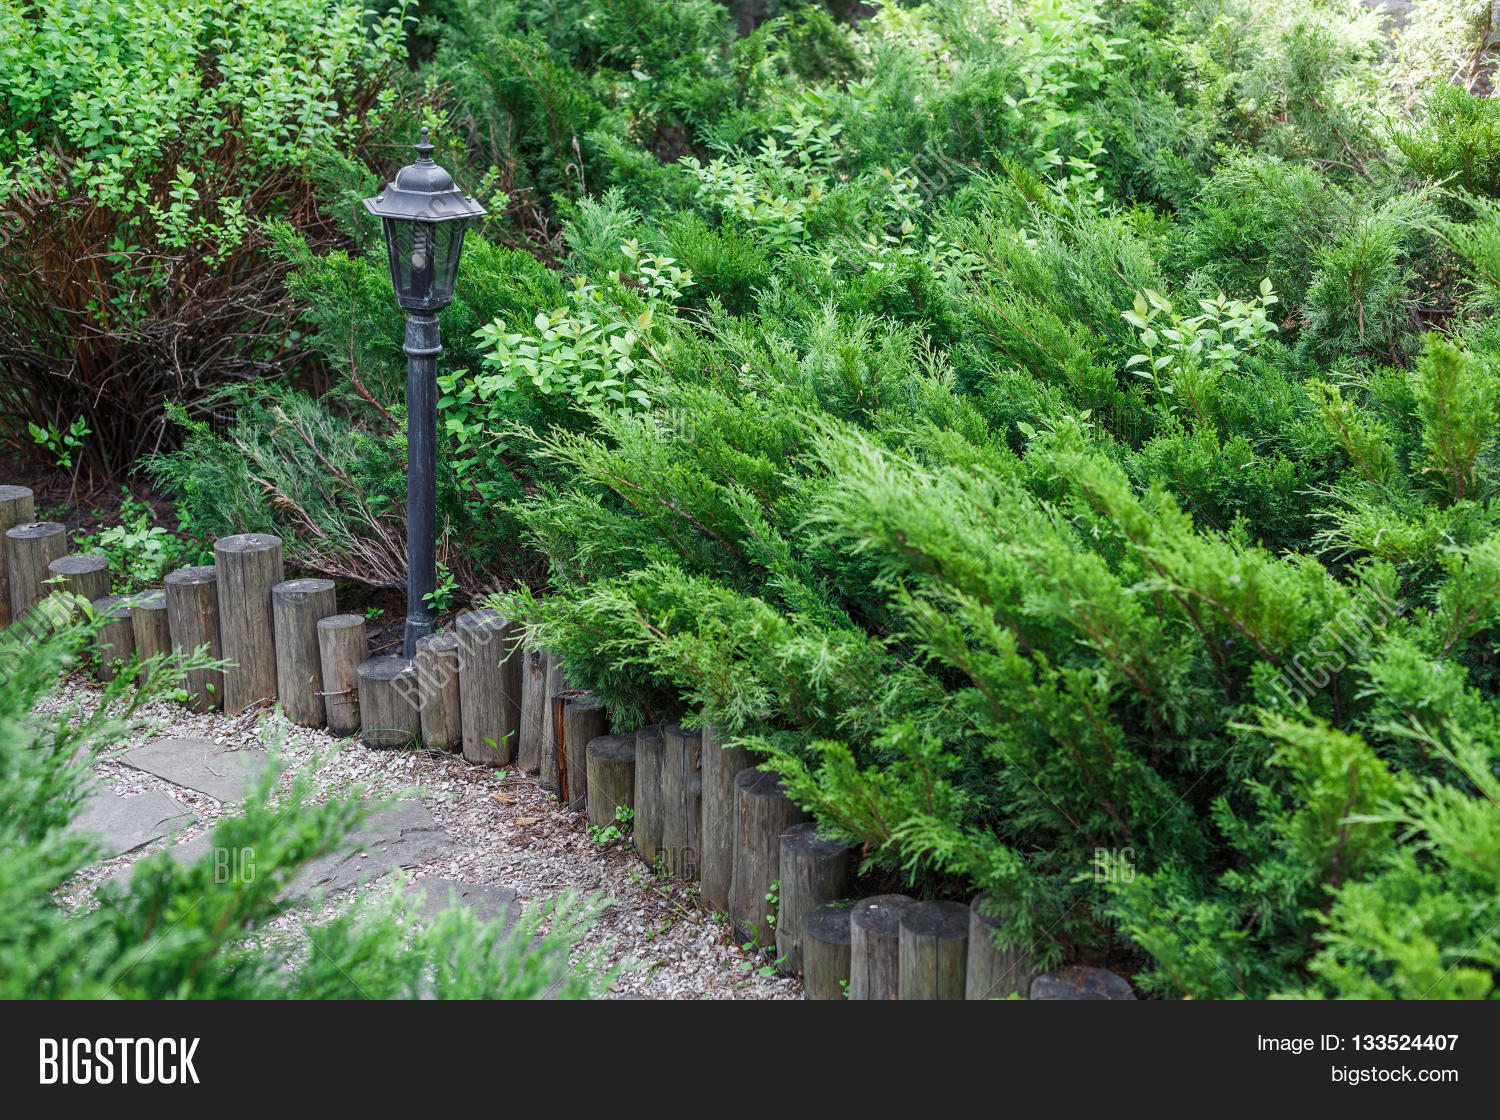 Landscape bushes and shrubs - Beautiful Landscape Design Garden Path With Park Light Wooden Fence Evergreen Bushes And